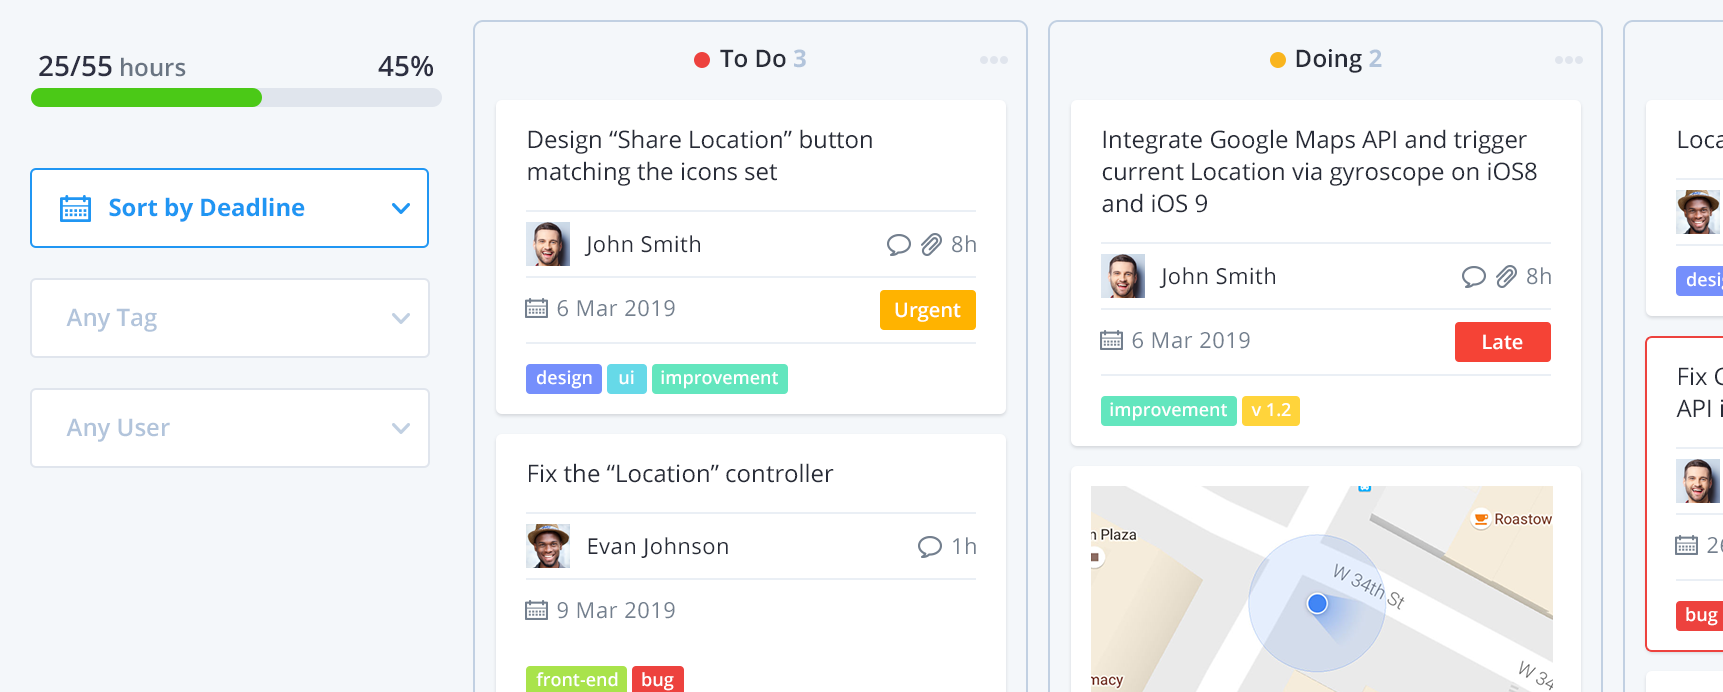 Kanban board for Agile Project Management Polydone